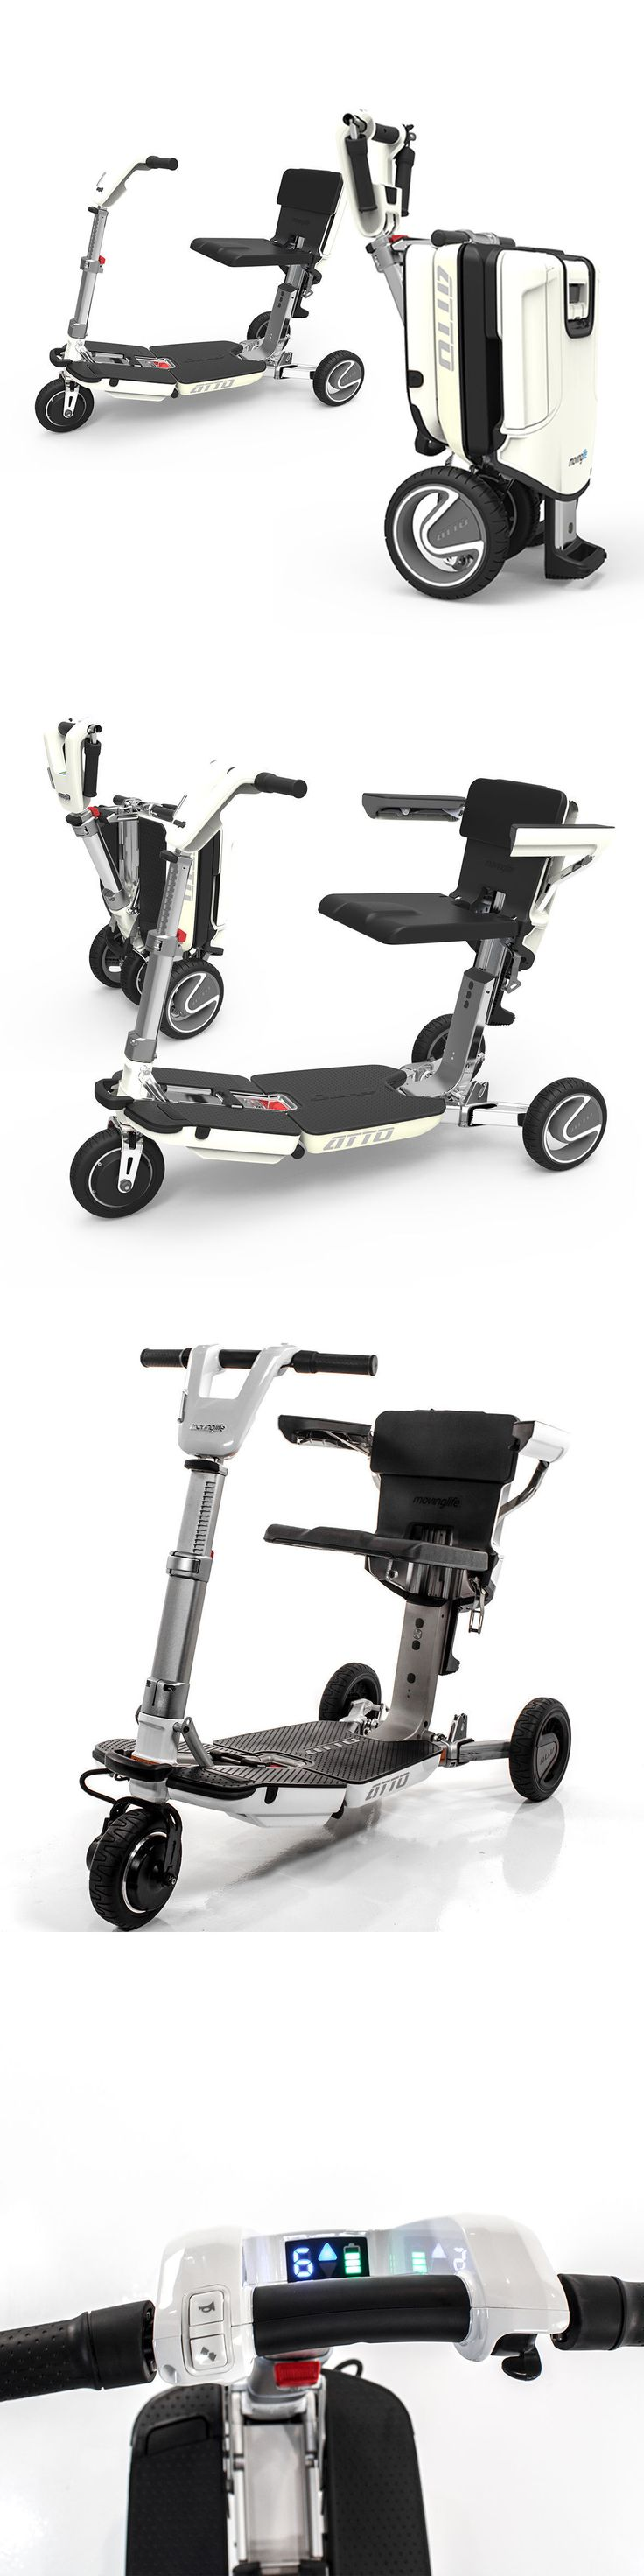 Mobility Scooters: New Atto Compact Deluxe Folding Lightweight Mobility Scooter Moving Life Vehicle -> BUY IT NOW ONLY: $3495 on eBay!